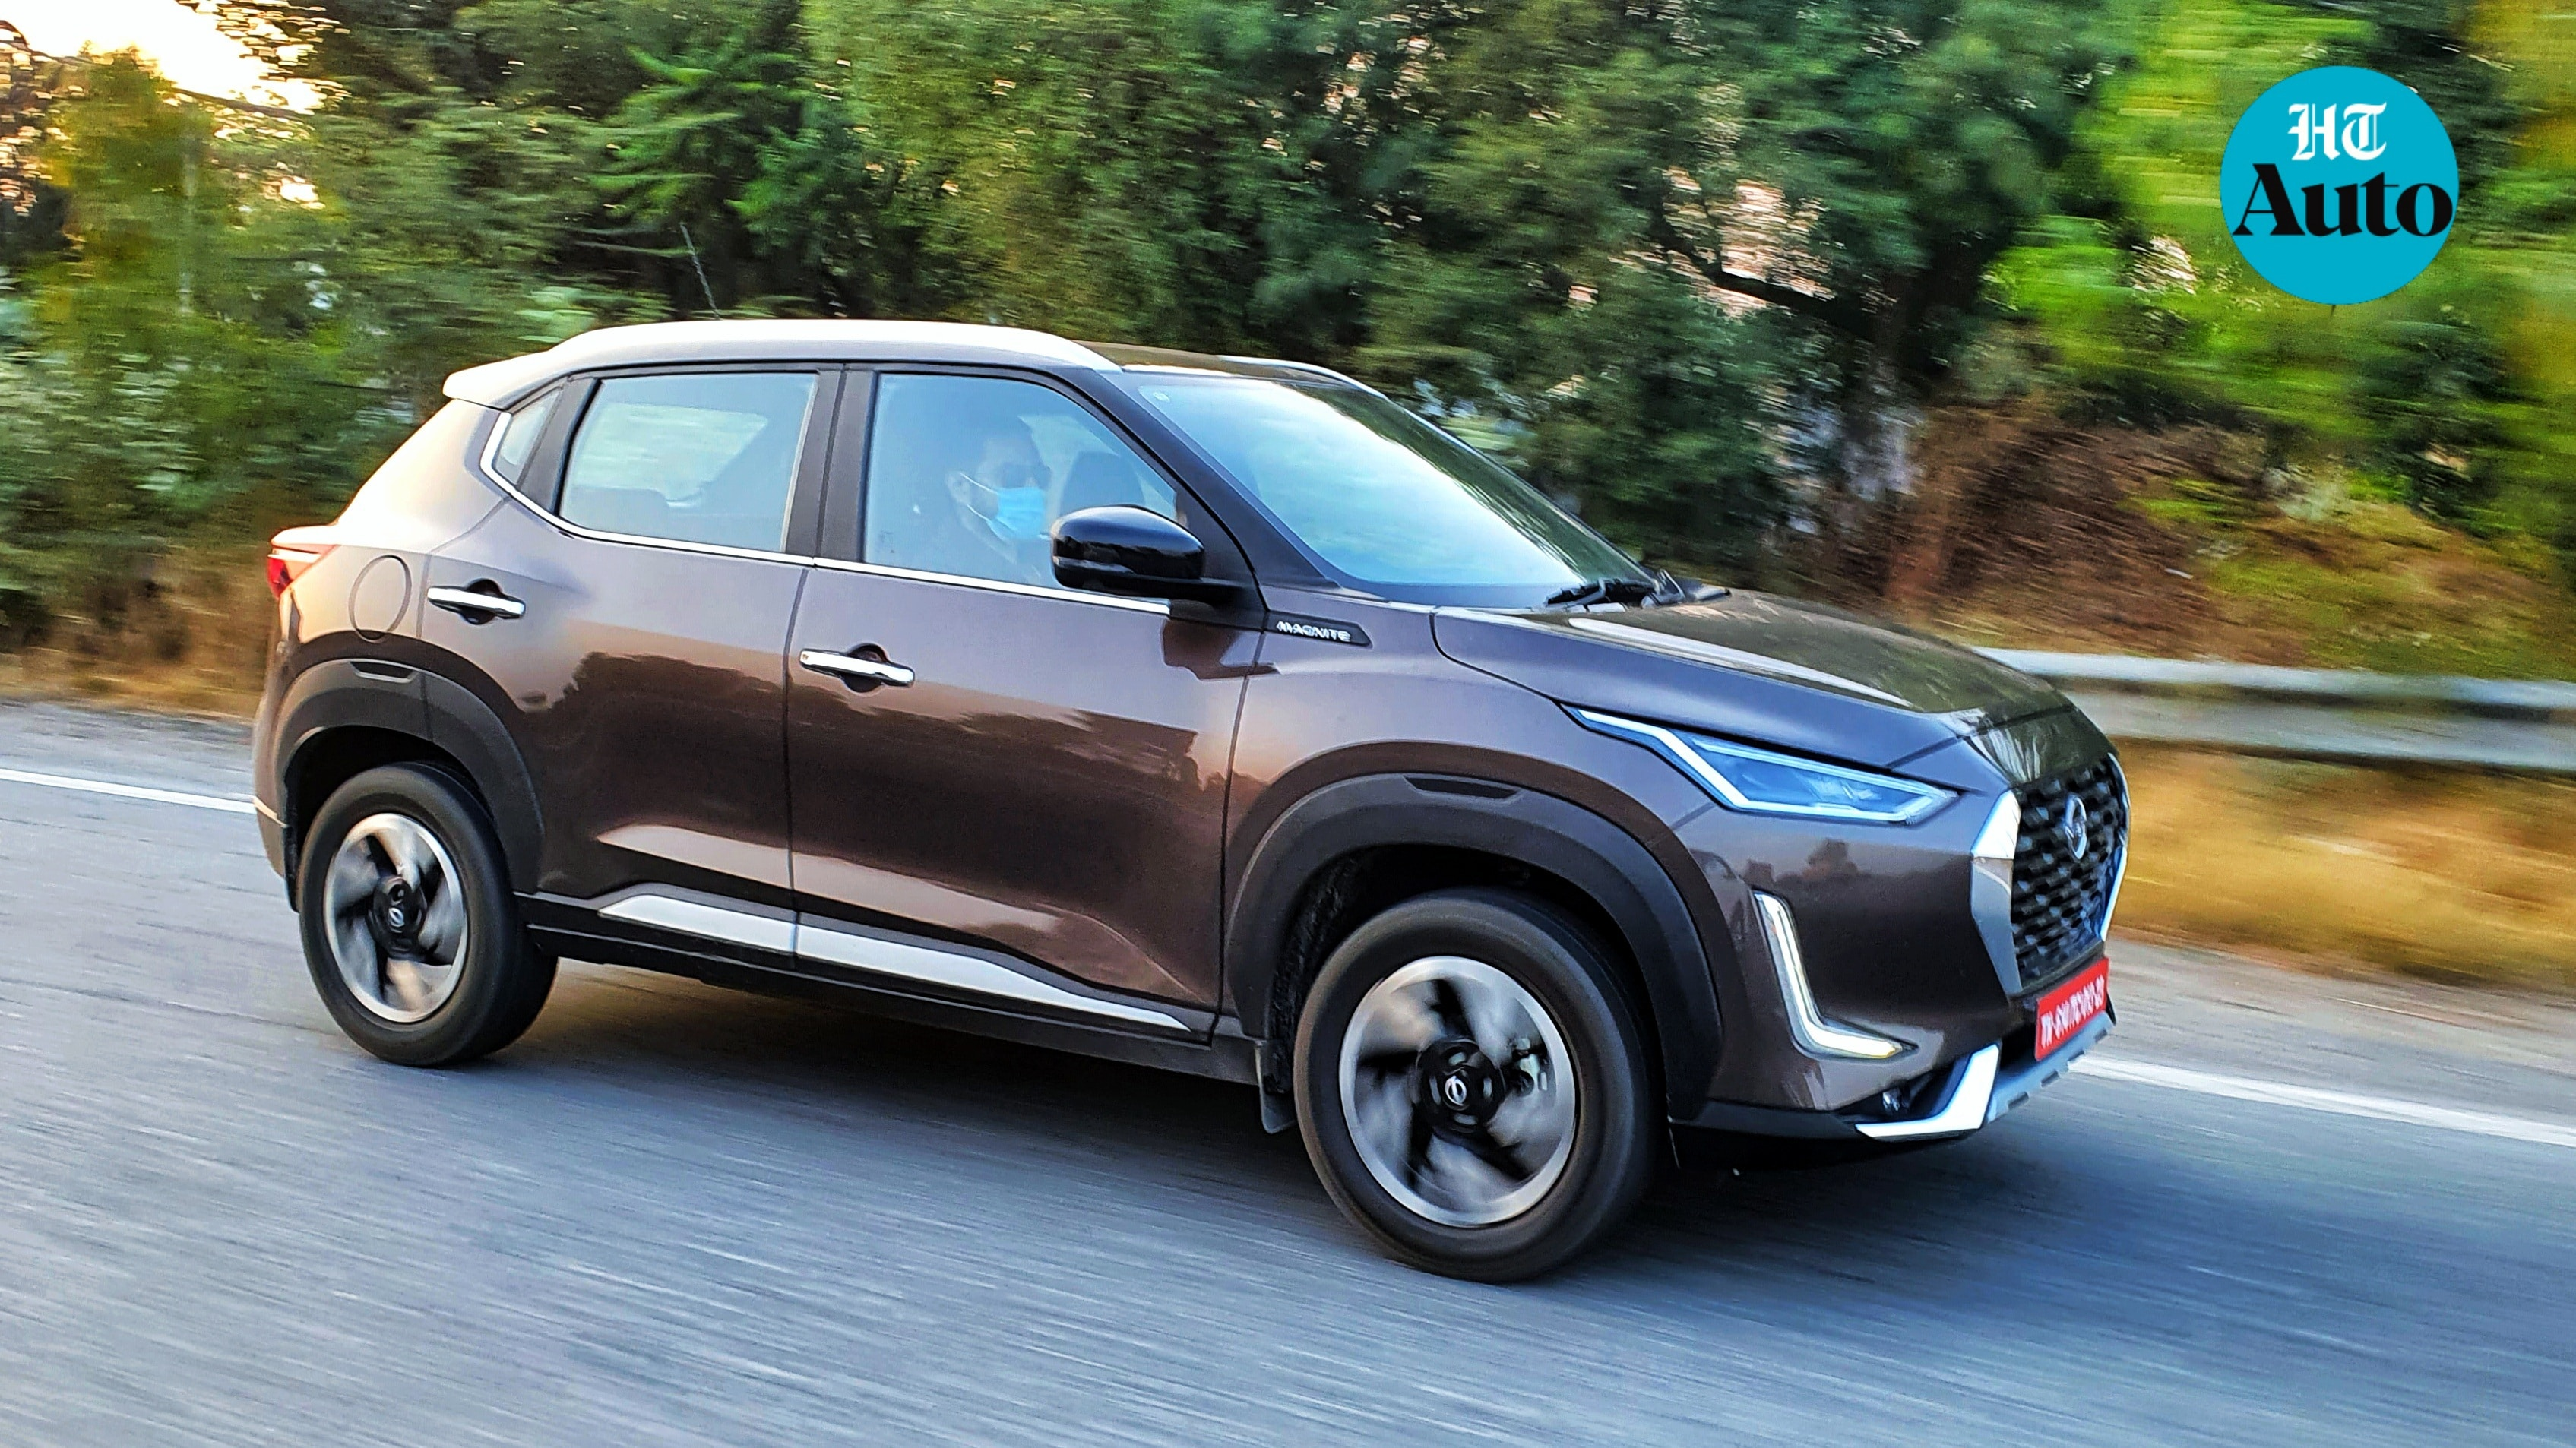 Turbo engine: While Magnite will come in a naturally-aspirated 1.0-litre petrol engine, it is the 1.0-litre HRA0 turbo engine that is to watch out for. It produces 100 Ps and offers 160 Nm of torque. (HT Auto/Sabyasachi Dasgupta)